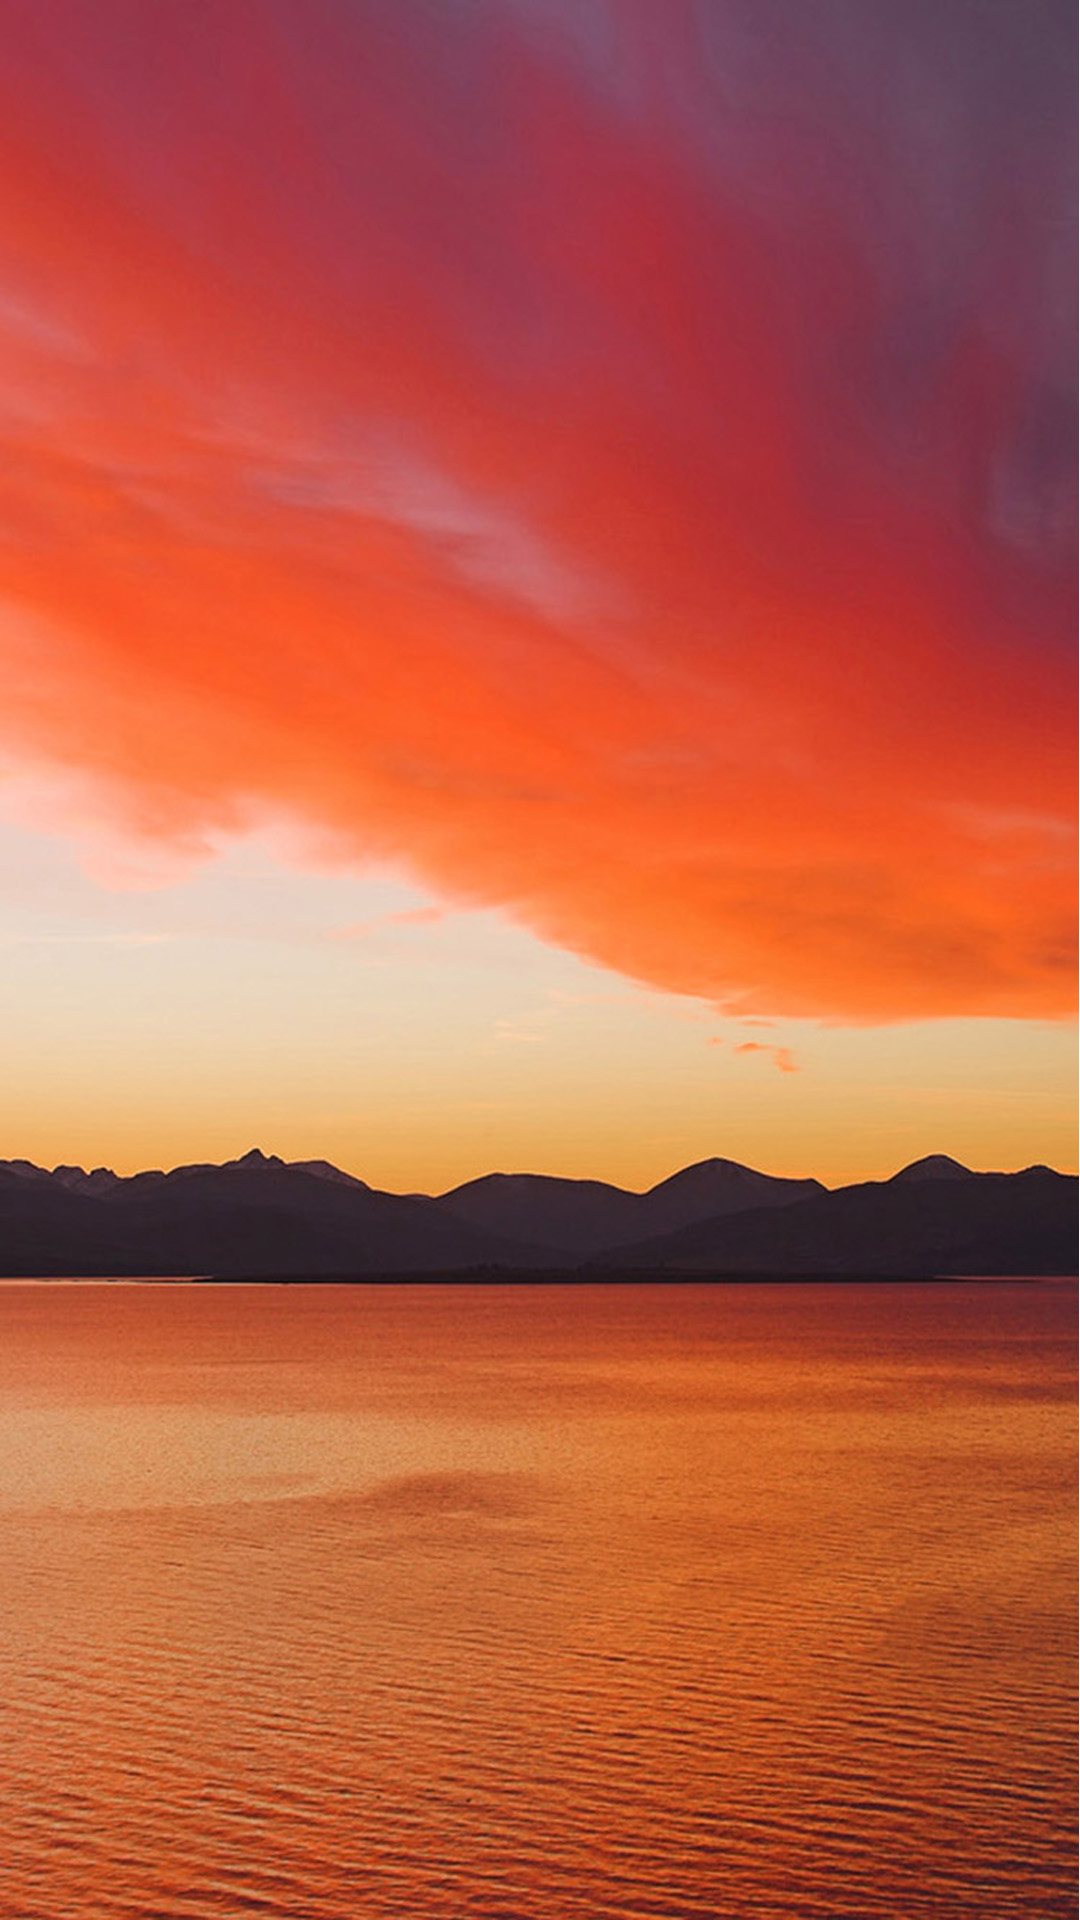 sunset over the cuillin mountains on the isle of skye from kyle of